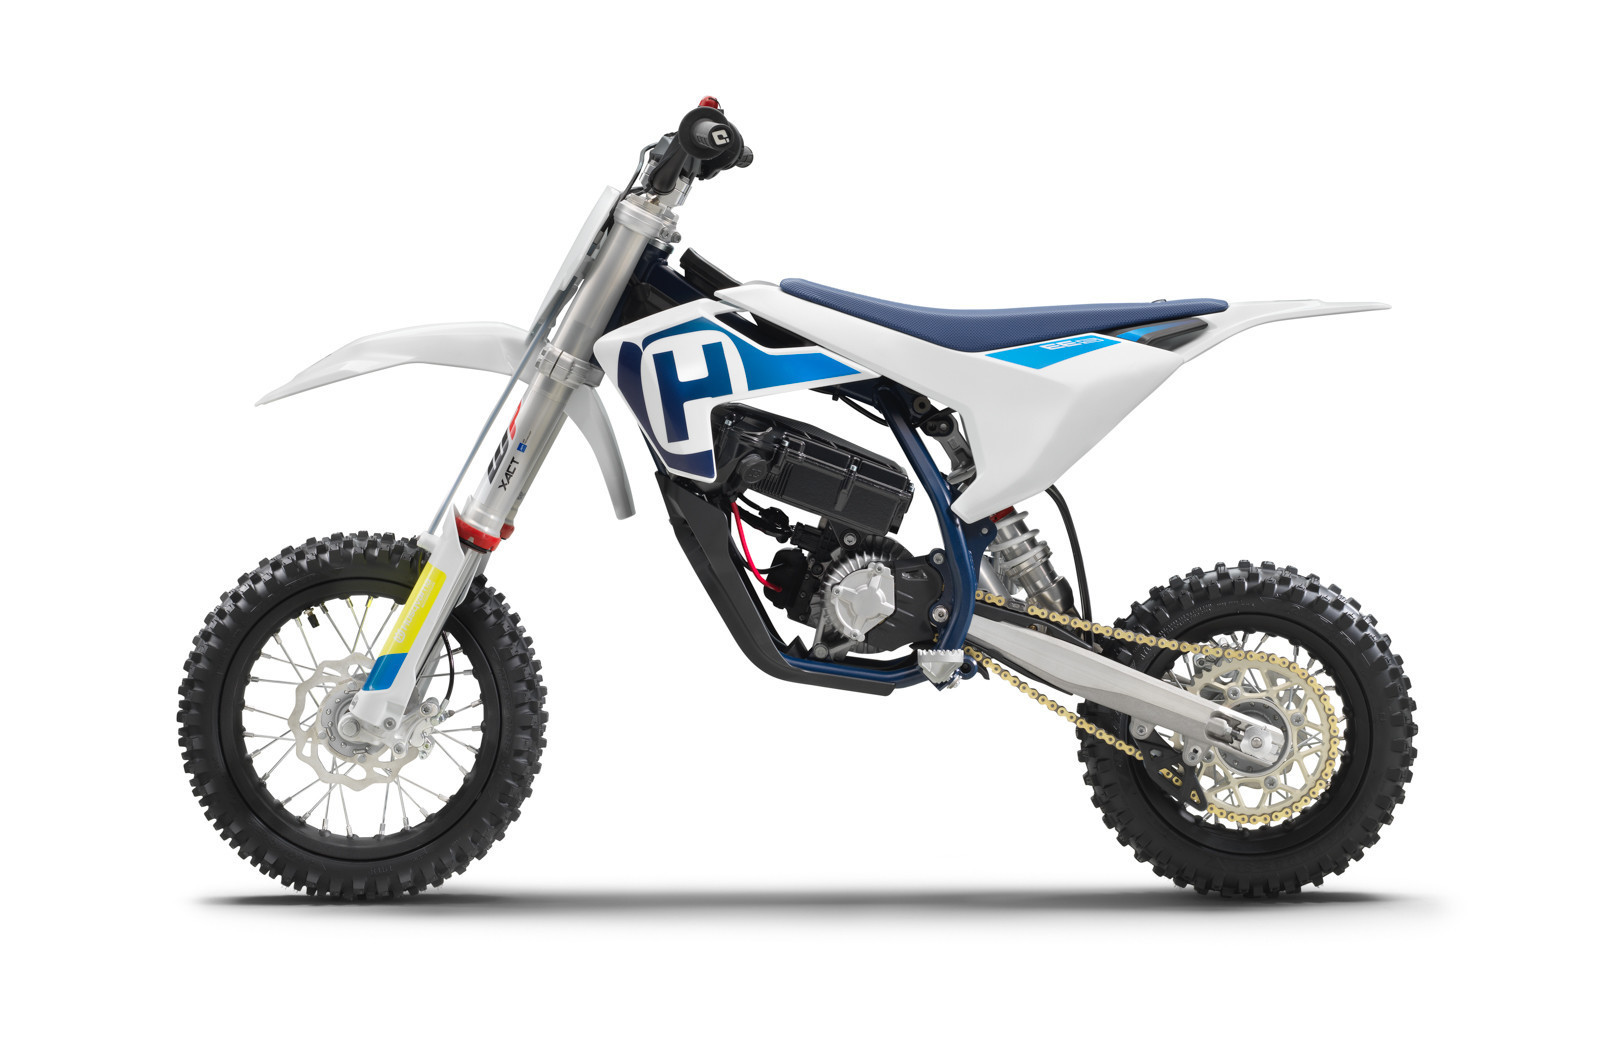 So which one do you pick? The Husqvarna (above), or the KTM (below).